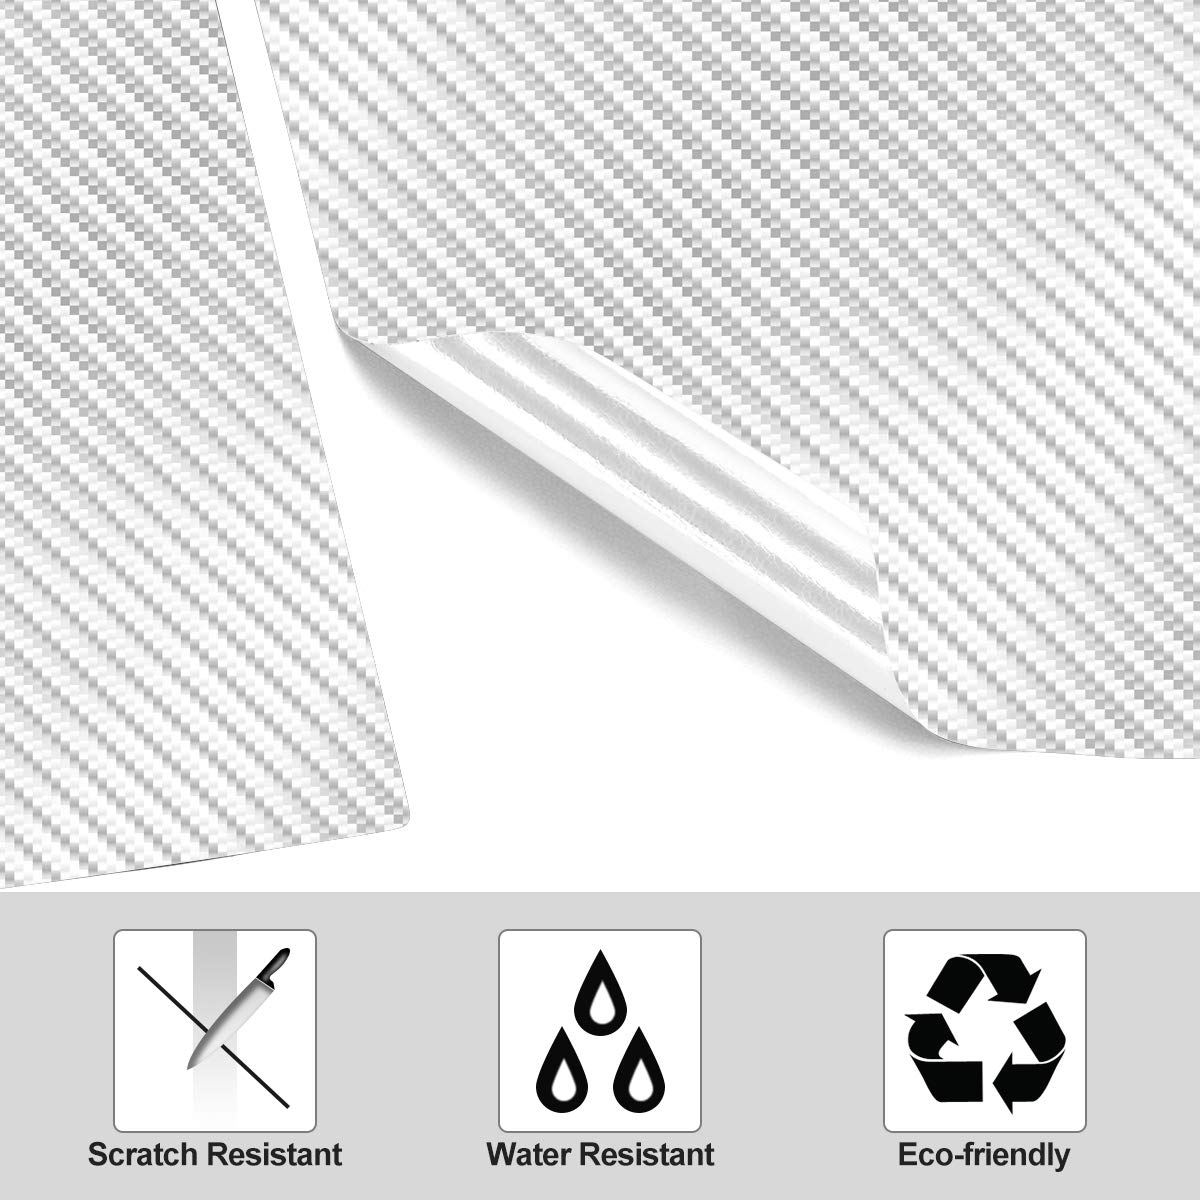 Fingerprints /& Dust White Center Console Wrap Kit for Tesla Model 3 Vinyl Sticker Protector Set with Extra Cup Holder Wrap for Preventing Scratches